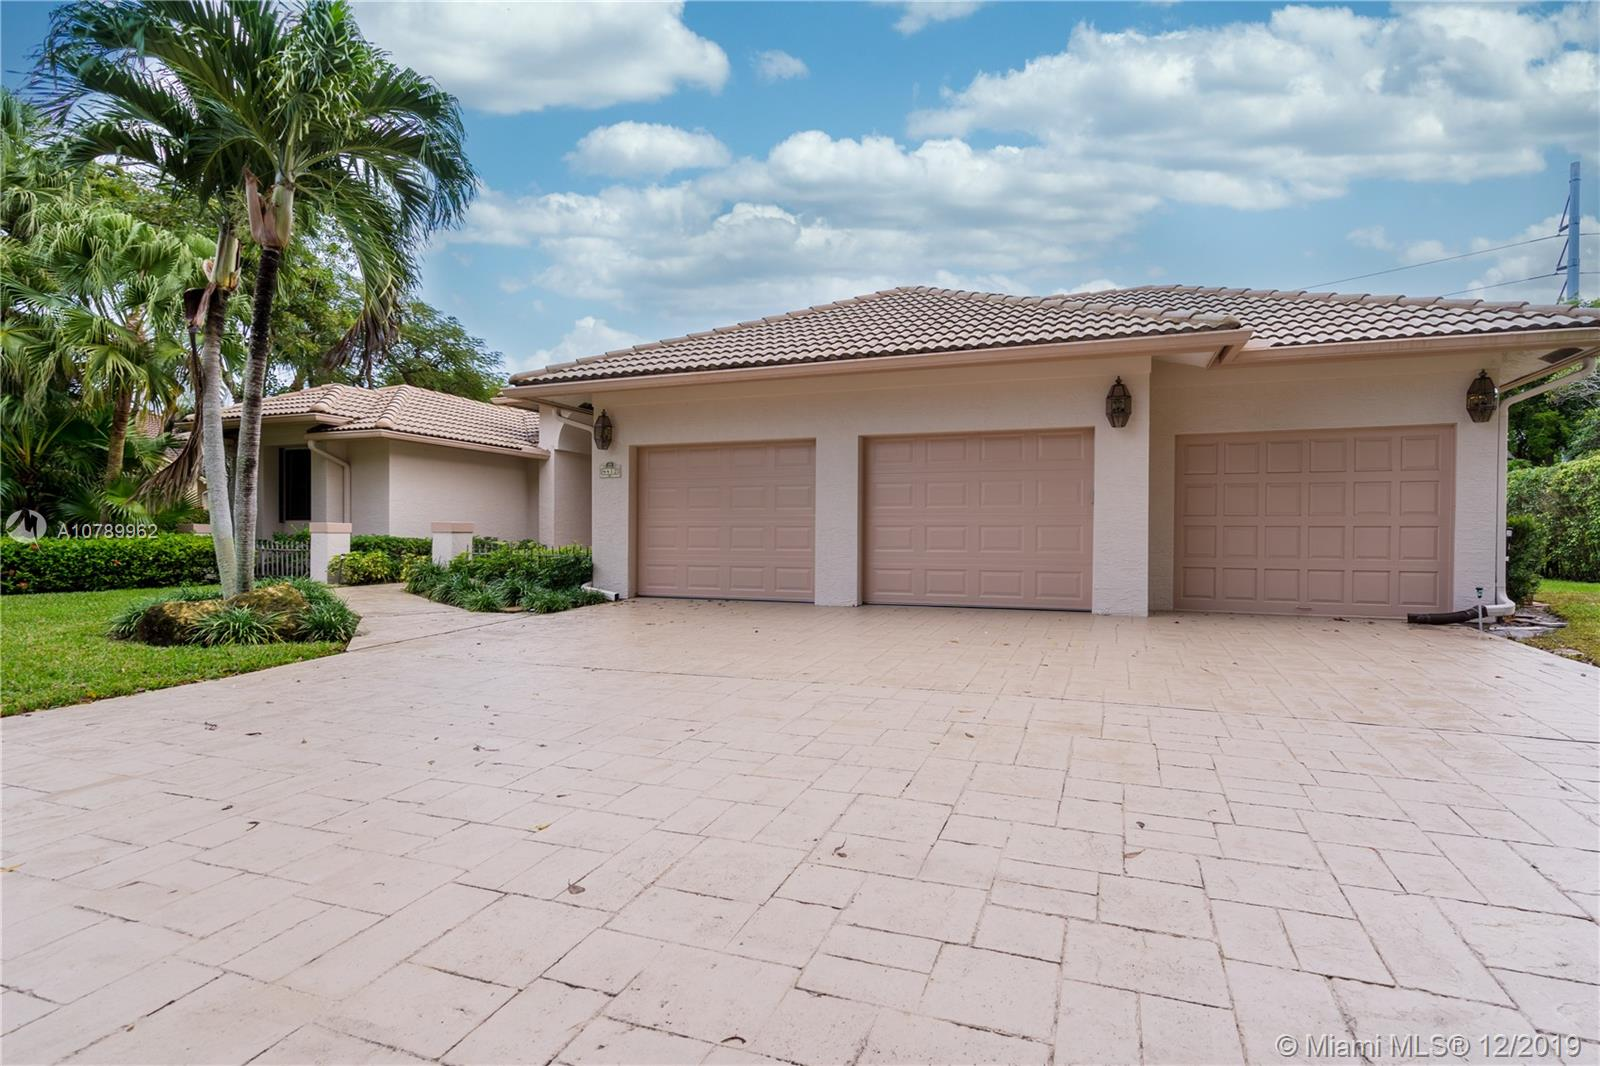 4412 Woodfield Blvd, Boca Raton, FL 33434